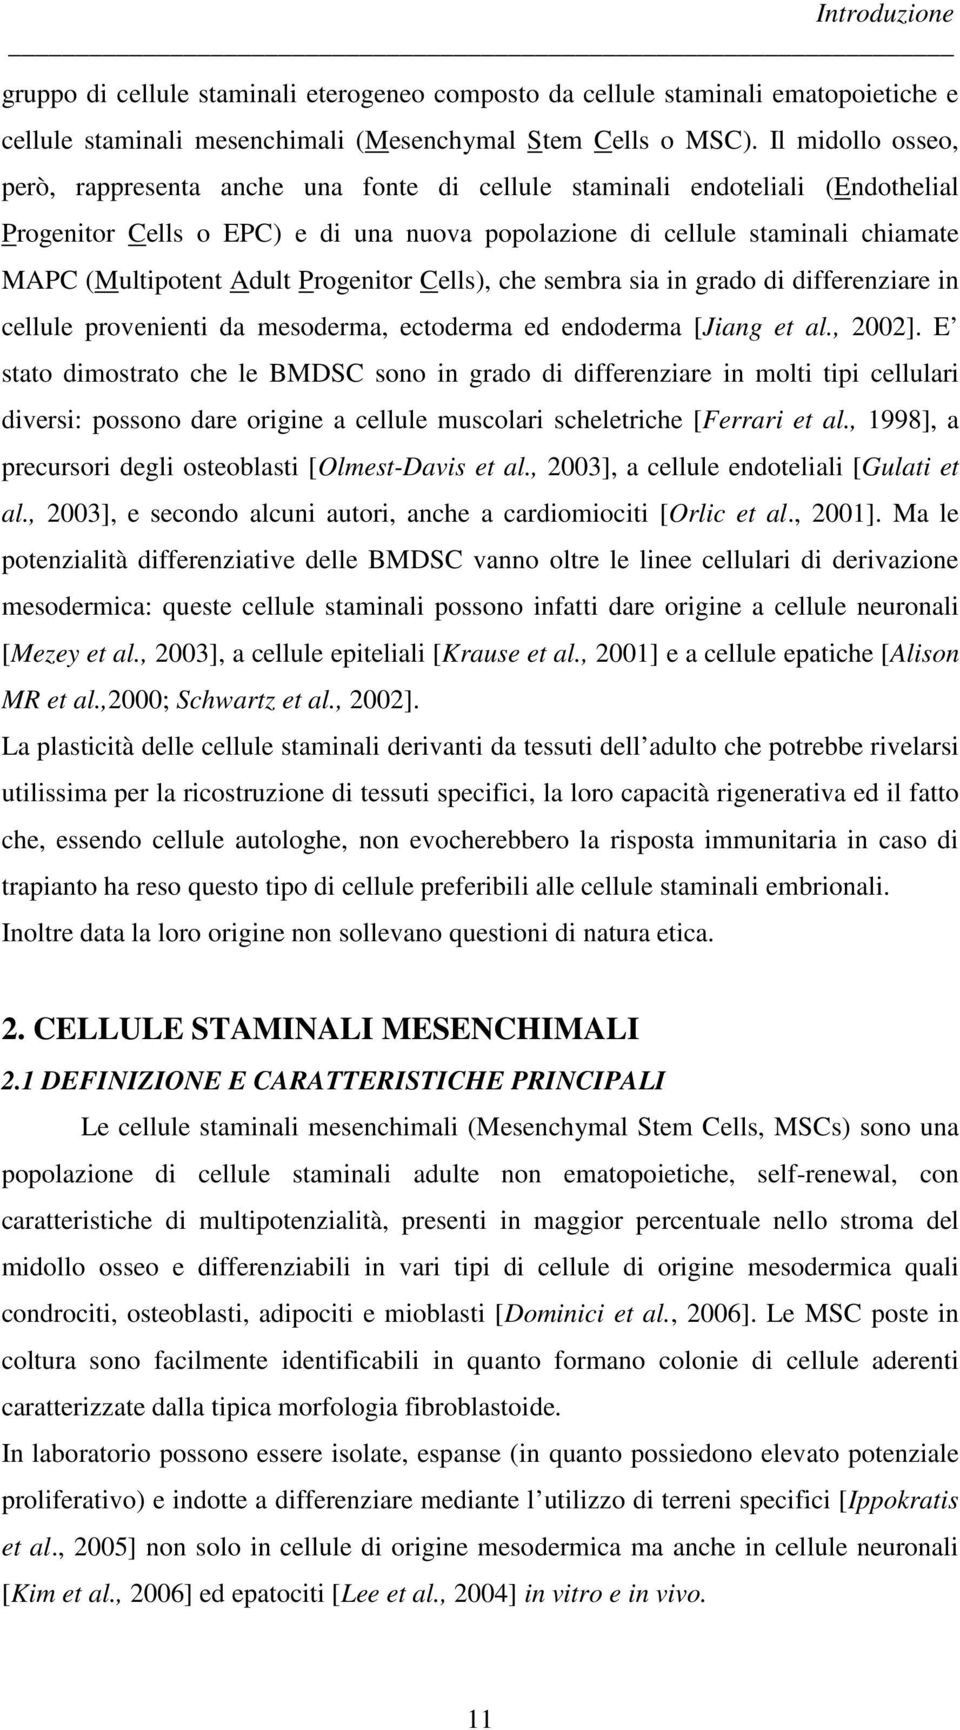 Adult Progenitor Cells), che sembra sia in grado di differenziare in cellule provenienti da mesoderma, ectoderma ed endoderma [Jiang et al., 2002].